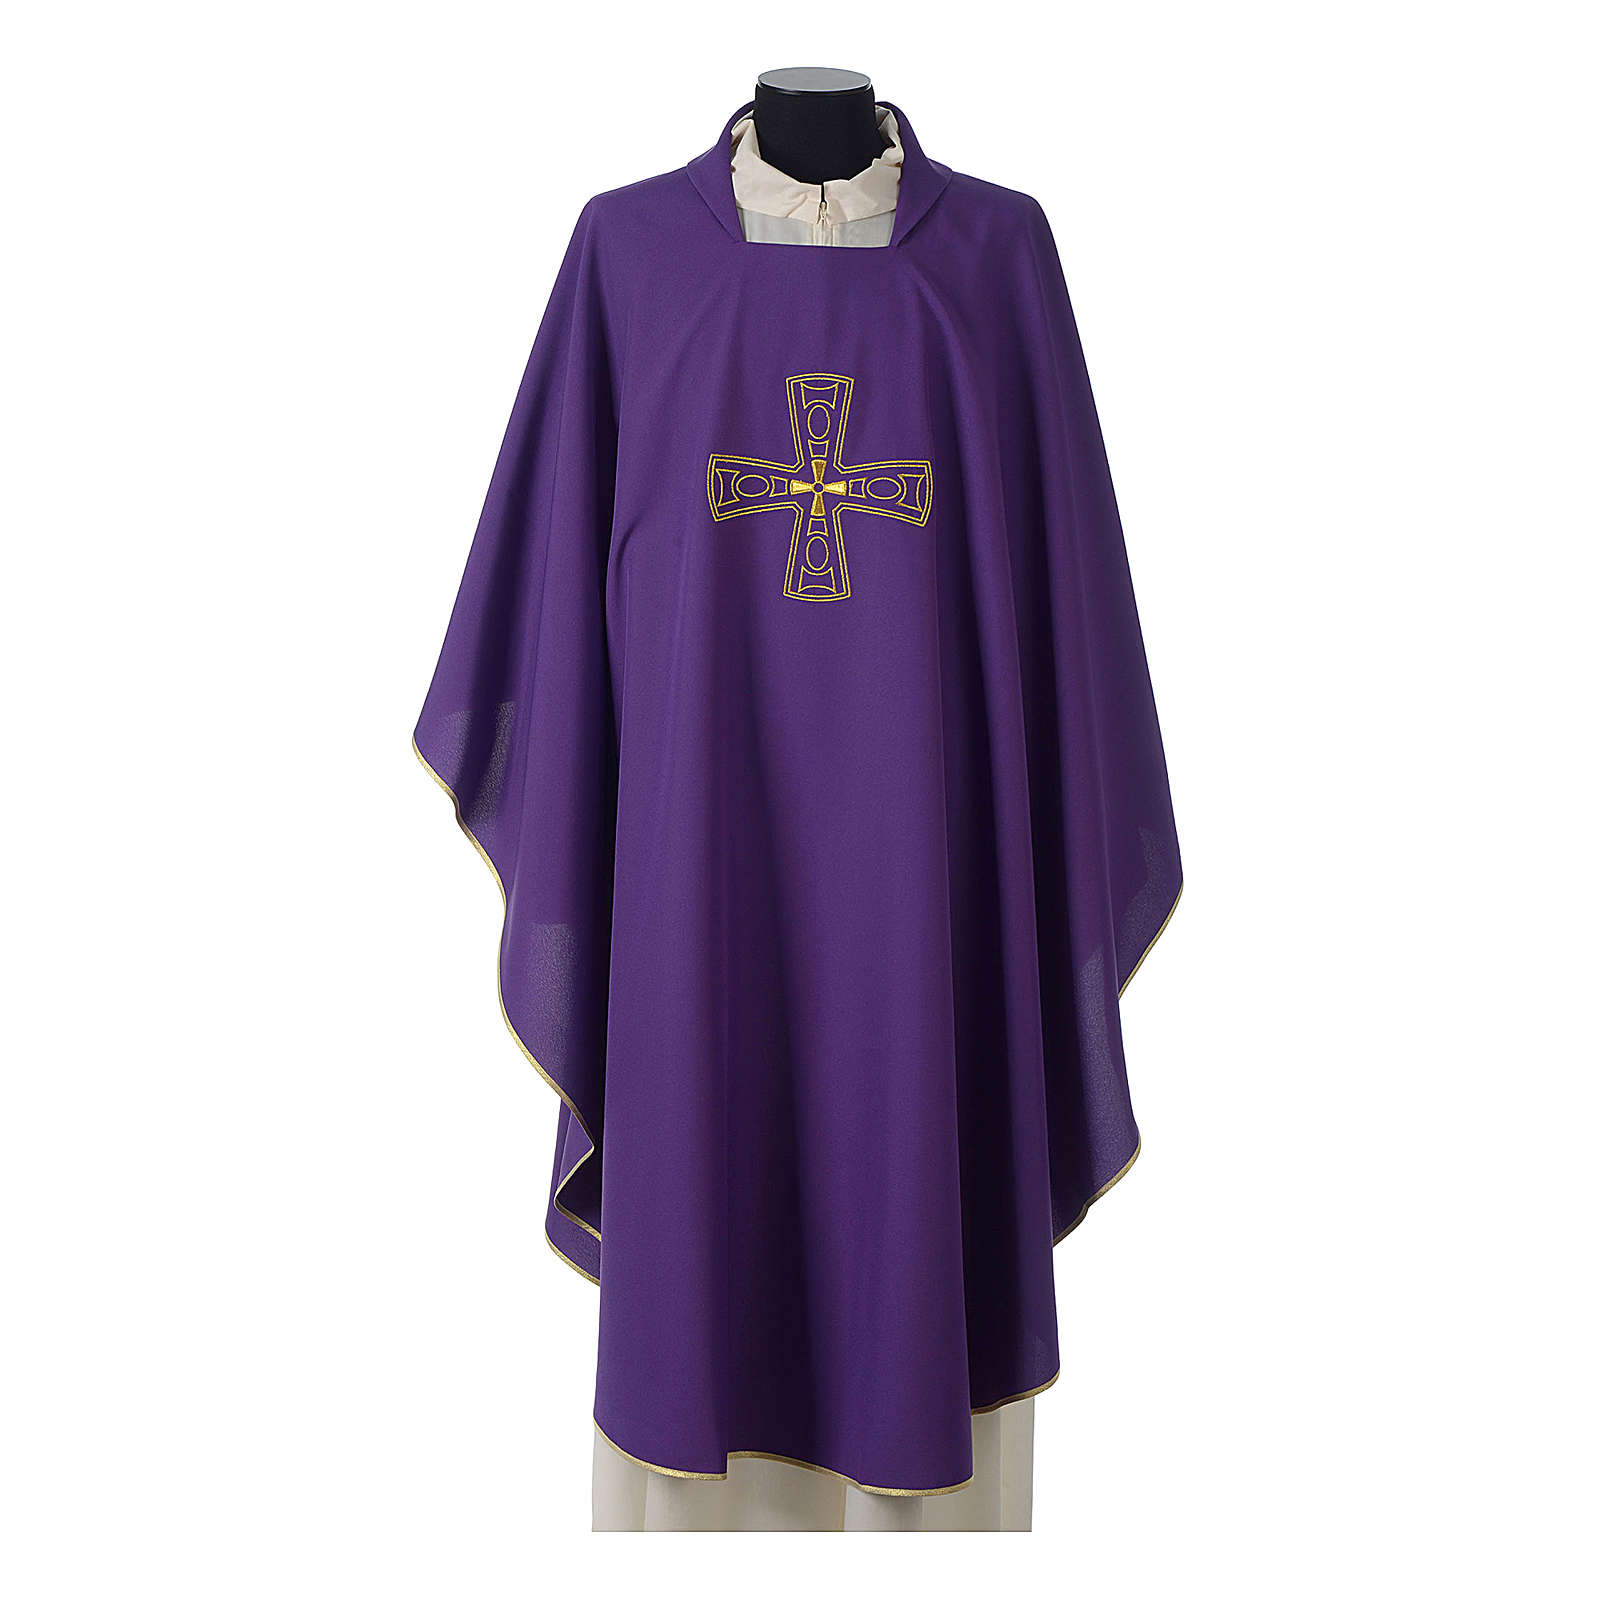 Catholic Priest Chasuble with embroidered gold cross 4